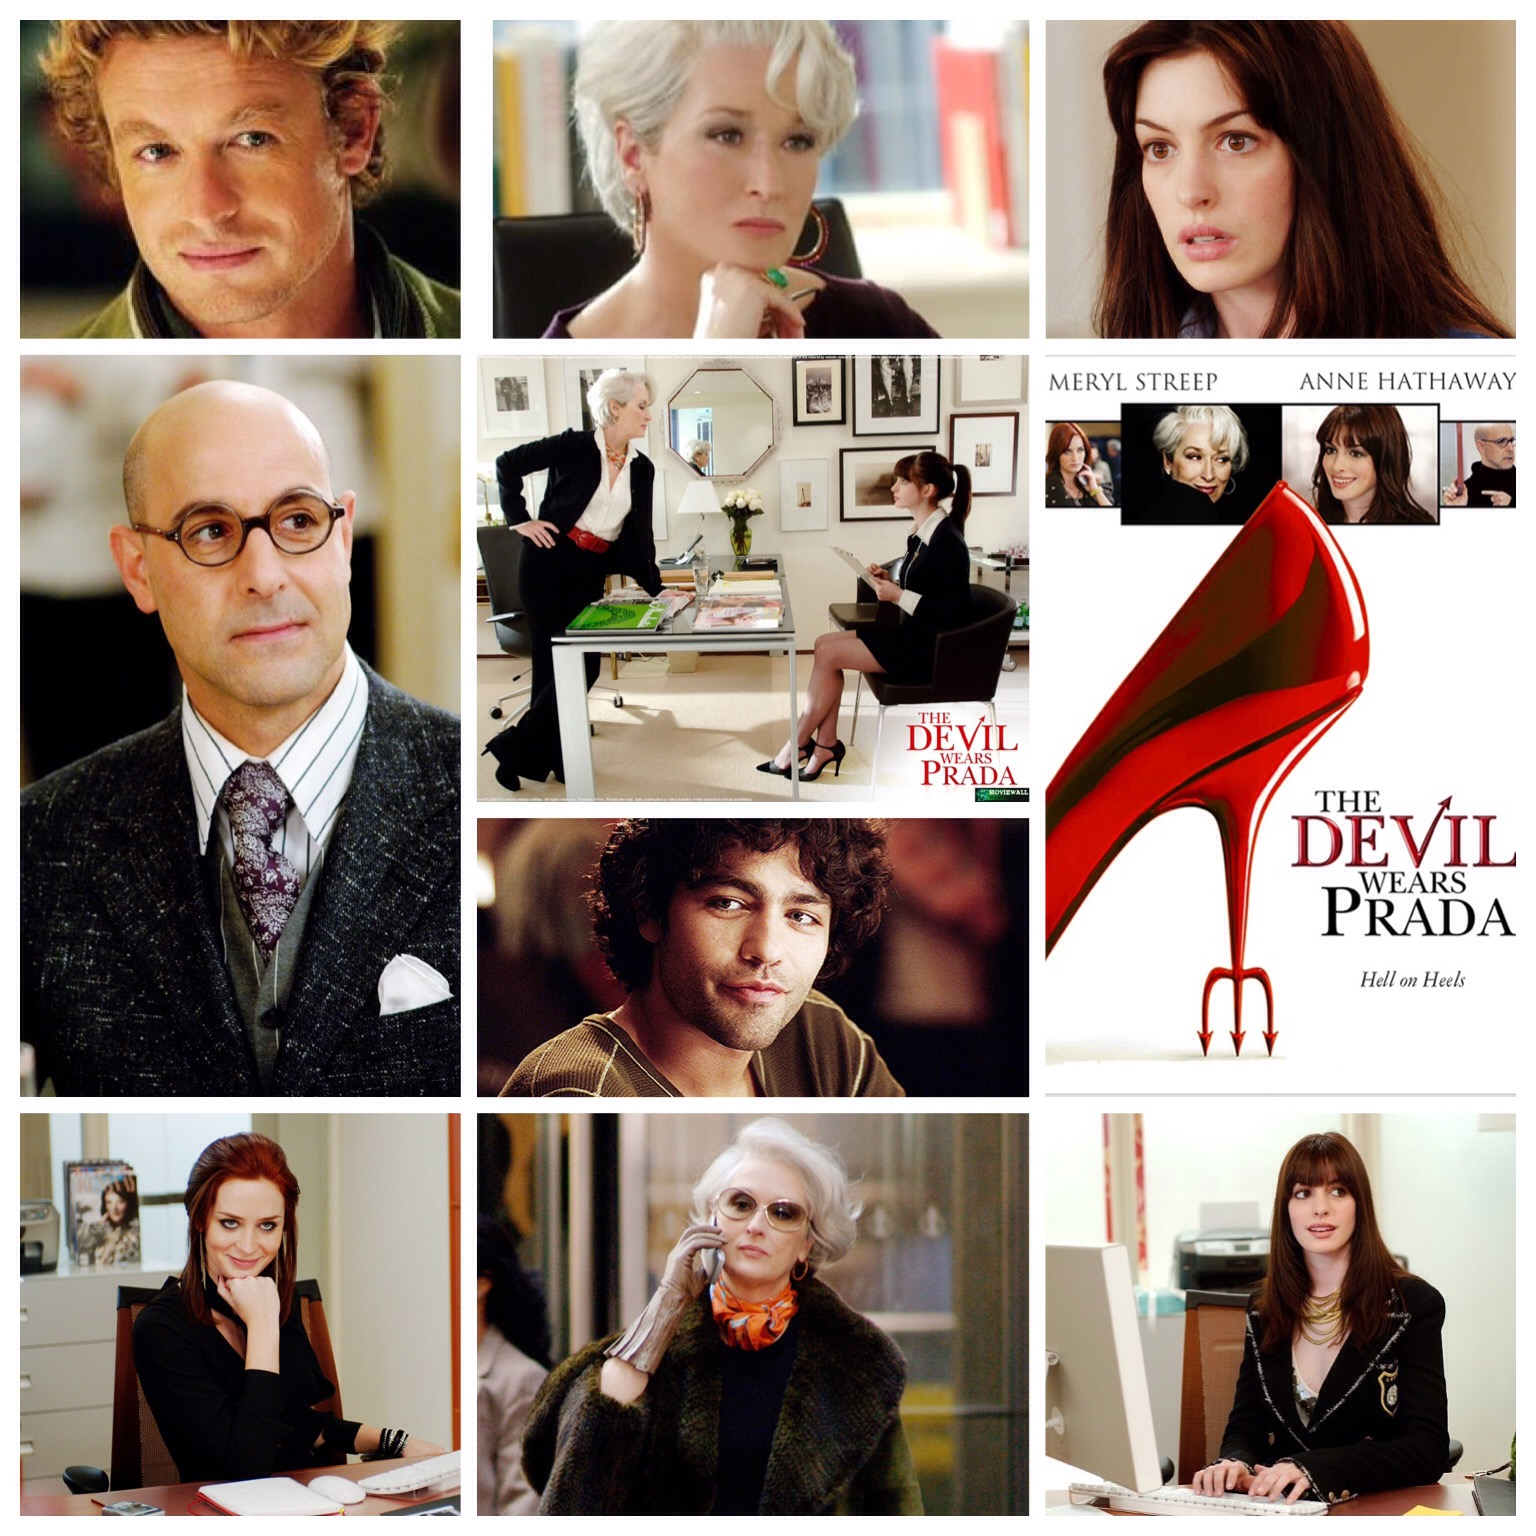 the devil wears prada a review Everyone loves a cinderella makeover, especially when its setting is catapulted in time to the formidably spotless, lacquered world of modern fashion magazines the makers of the devil wears prada seem, in fact, to be banking on it which may be why they inserted a fairy tale metamorphosis into.